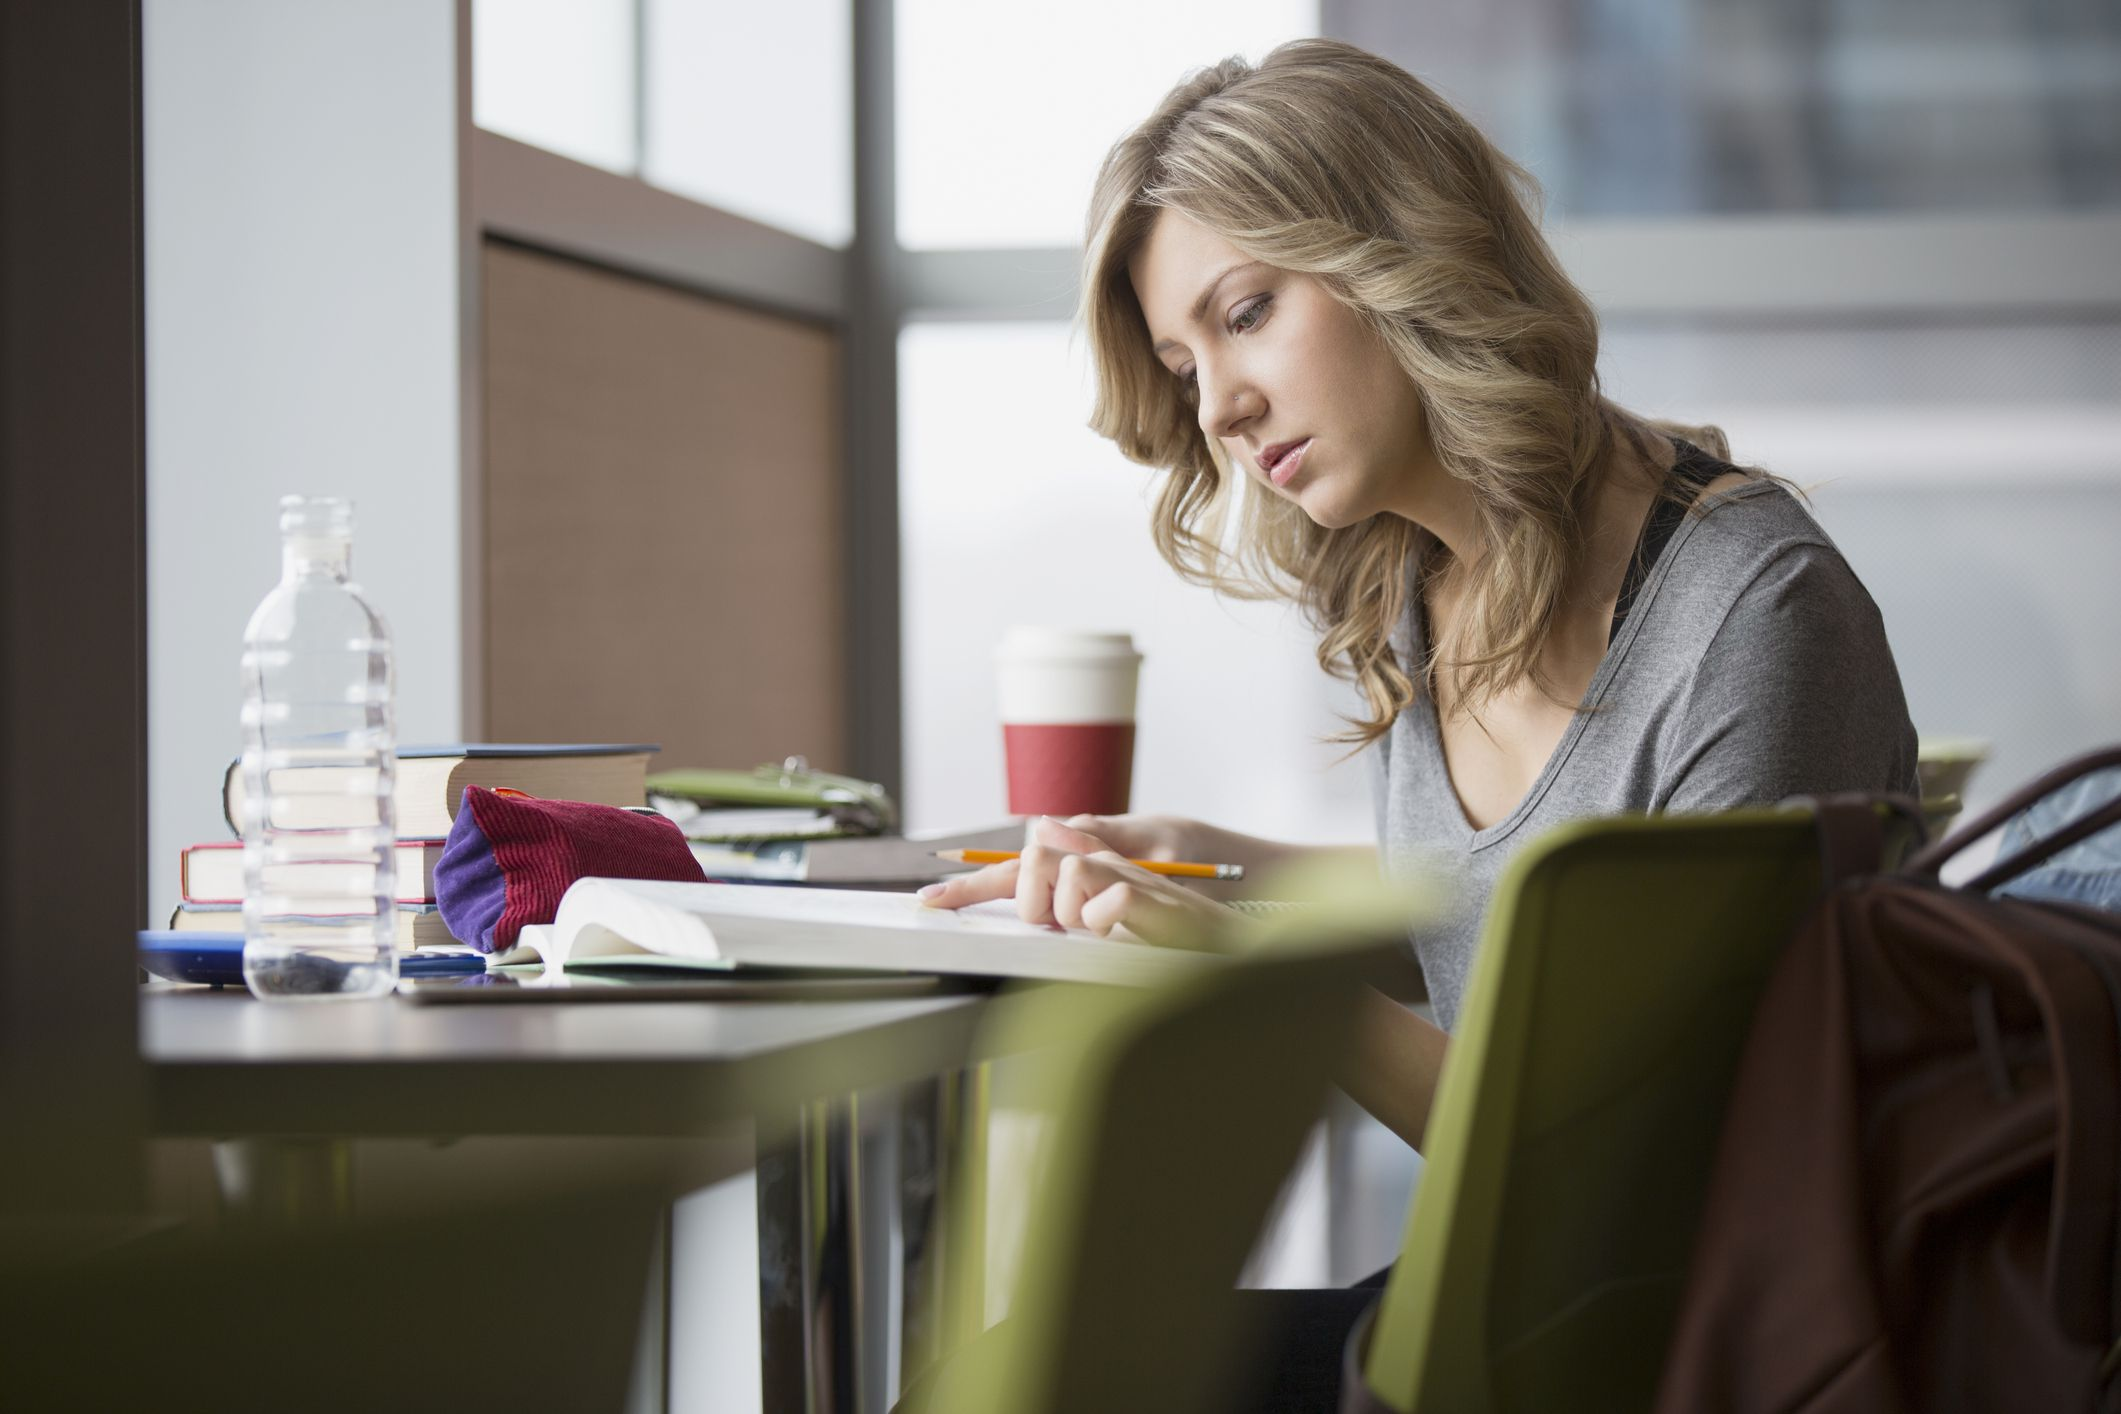 5 Steps To Take With Student Loans After Graduation